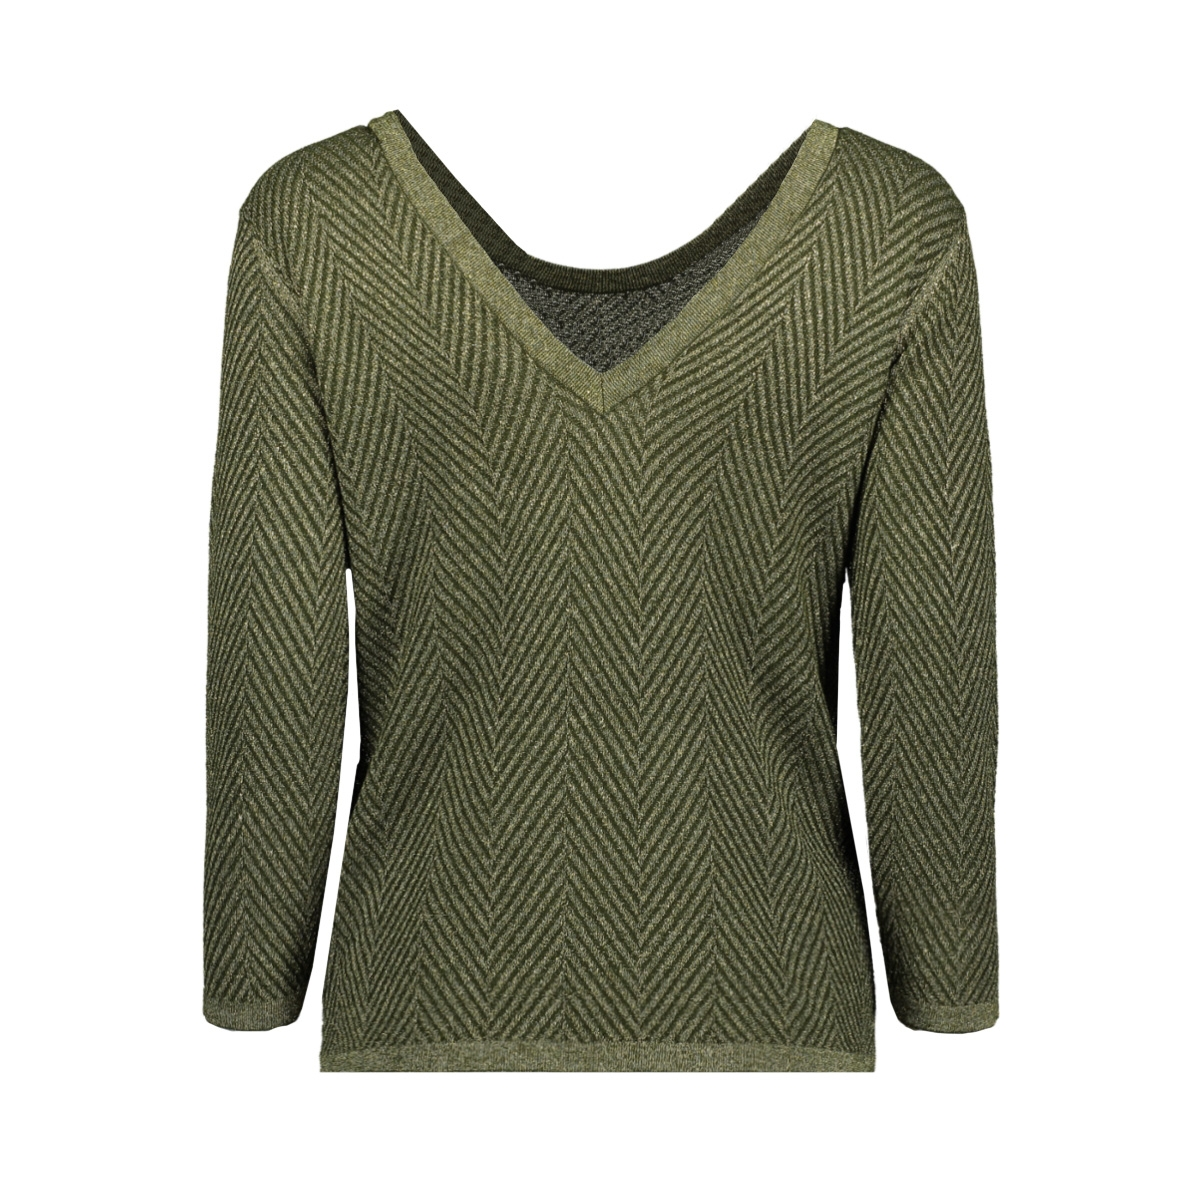 objlizzy 3/4 knit pullover 106 23030741 object trui forest night/gold